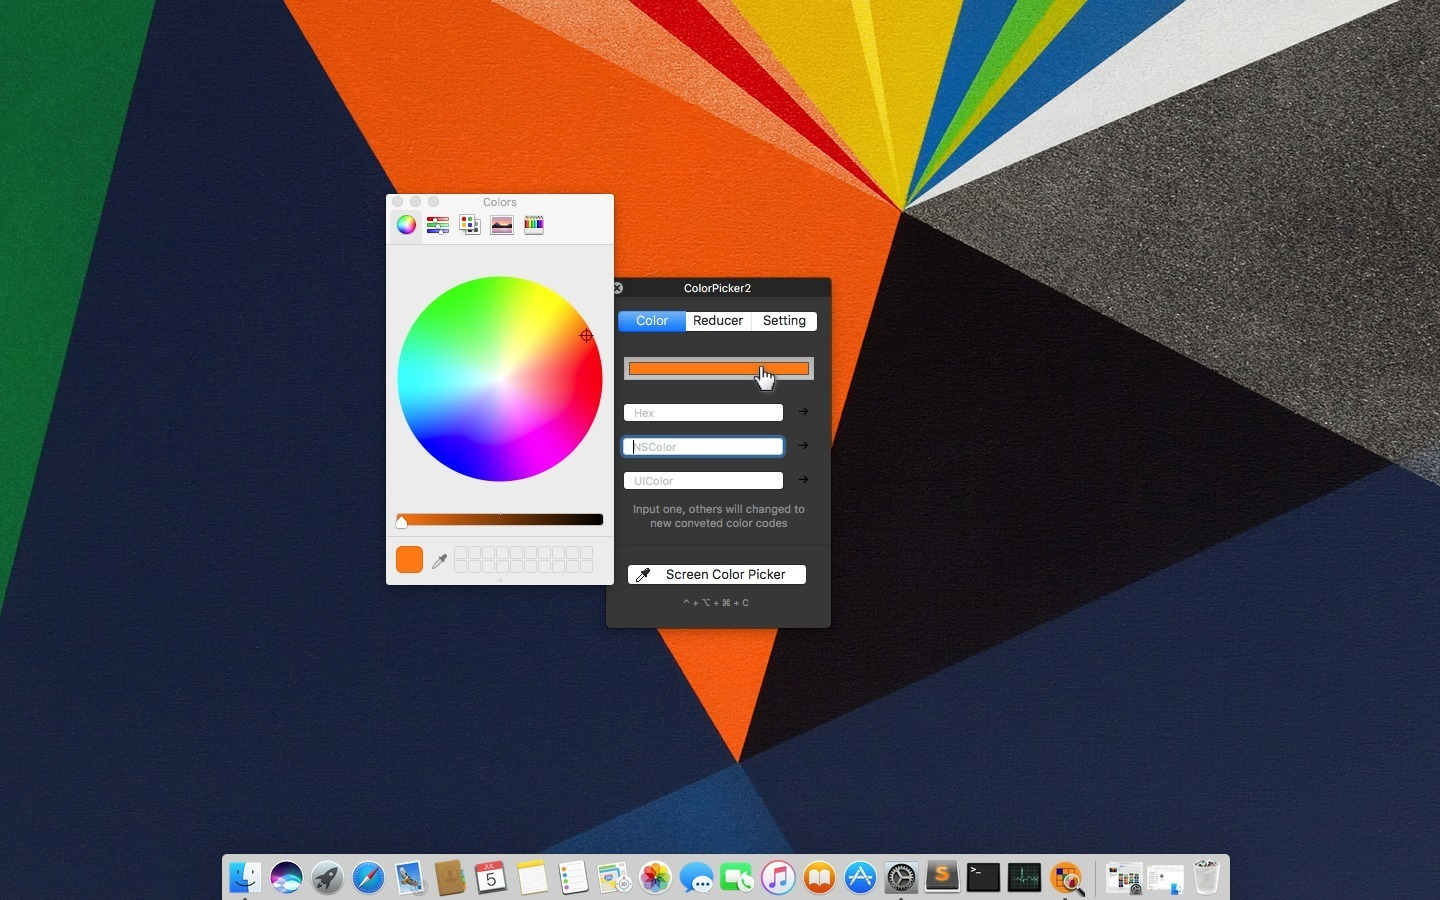 Screenshot 2 for ColorPicker2